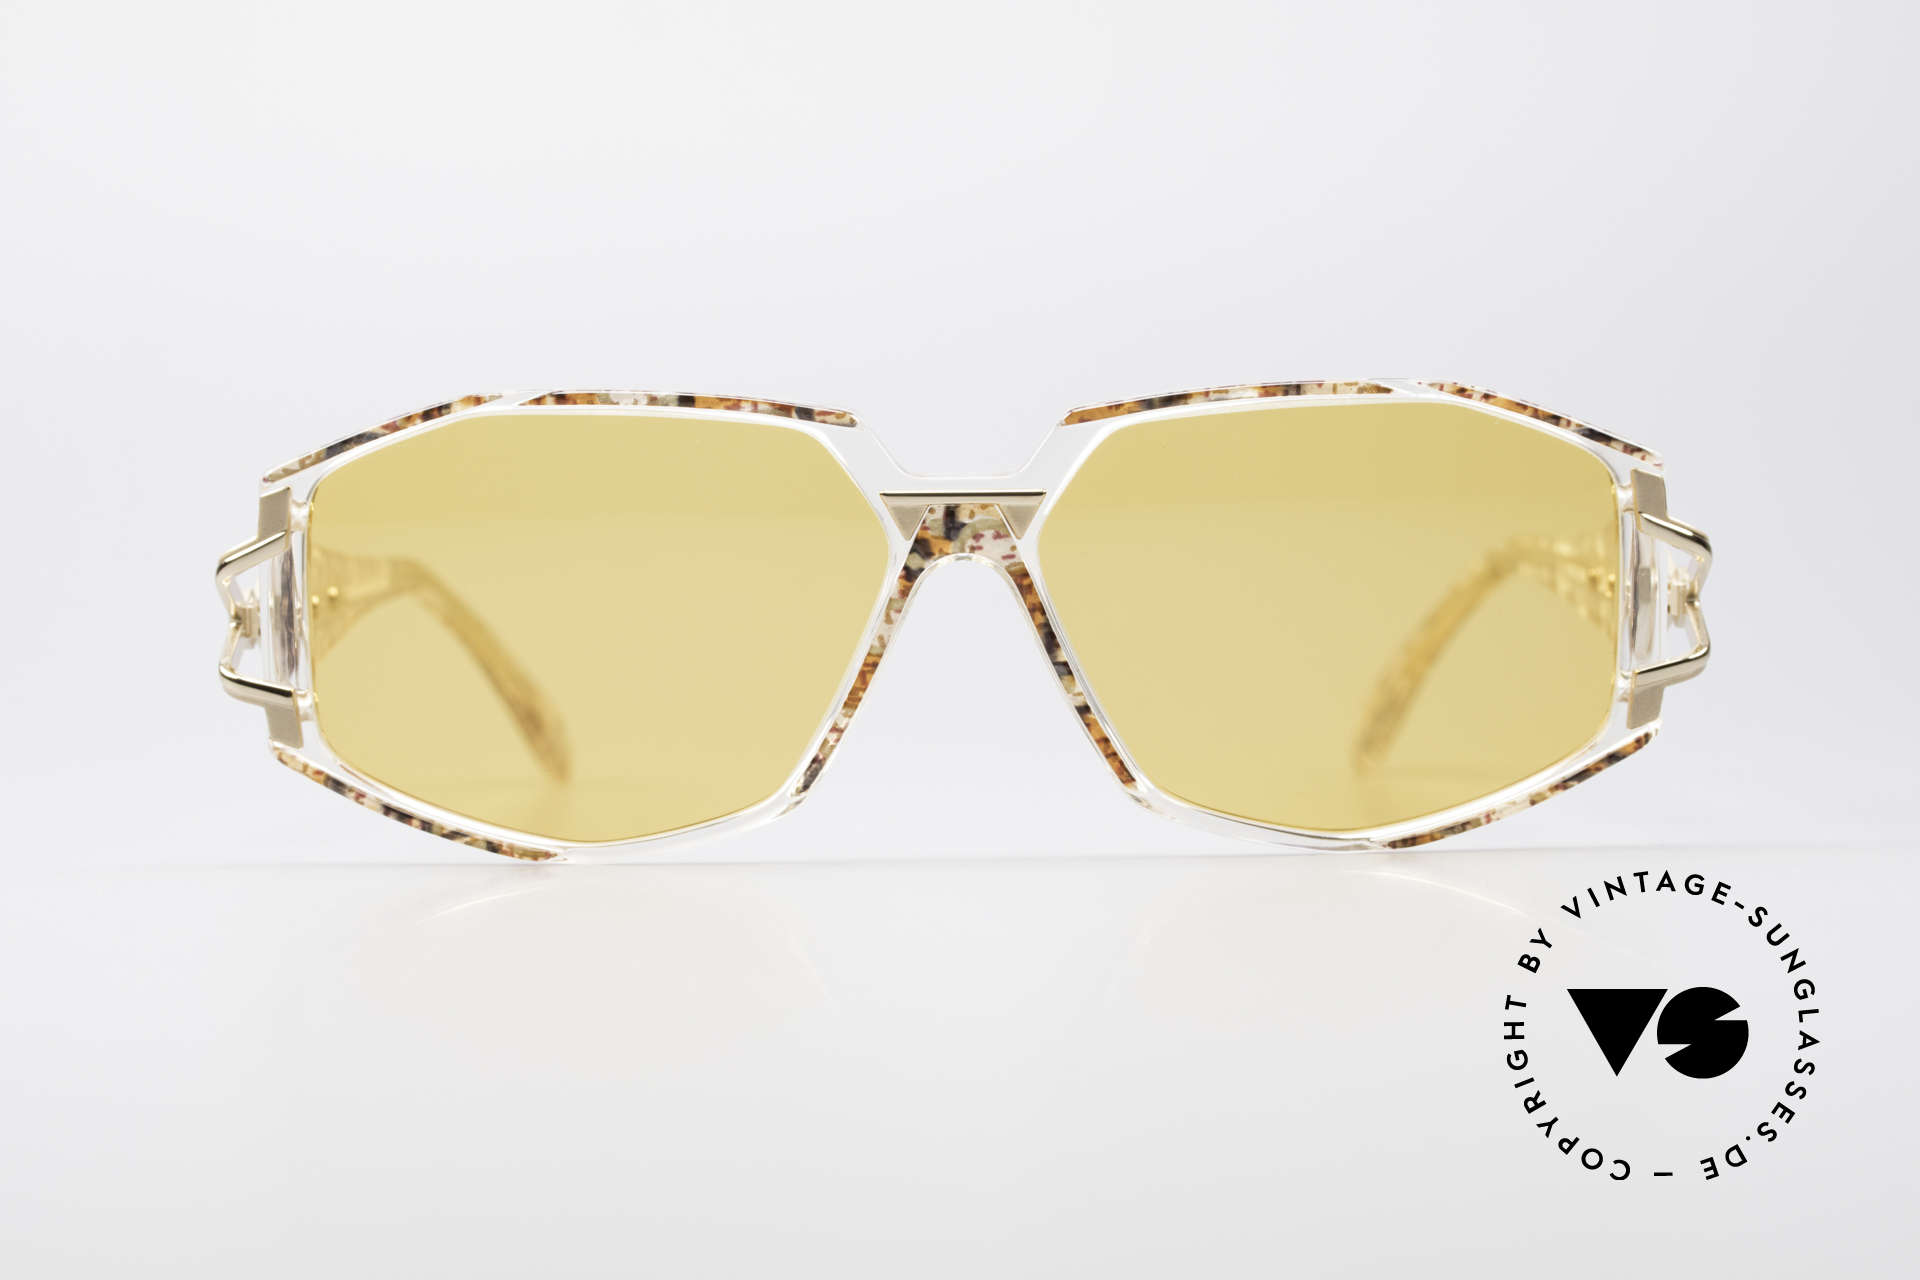 Cazal 368 90's Hip Hop Designer Frame, exciting design on the hinges of the arms; just unique, Made for Women